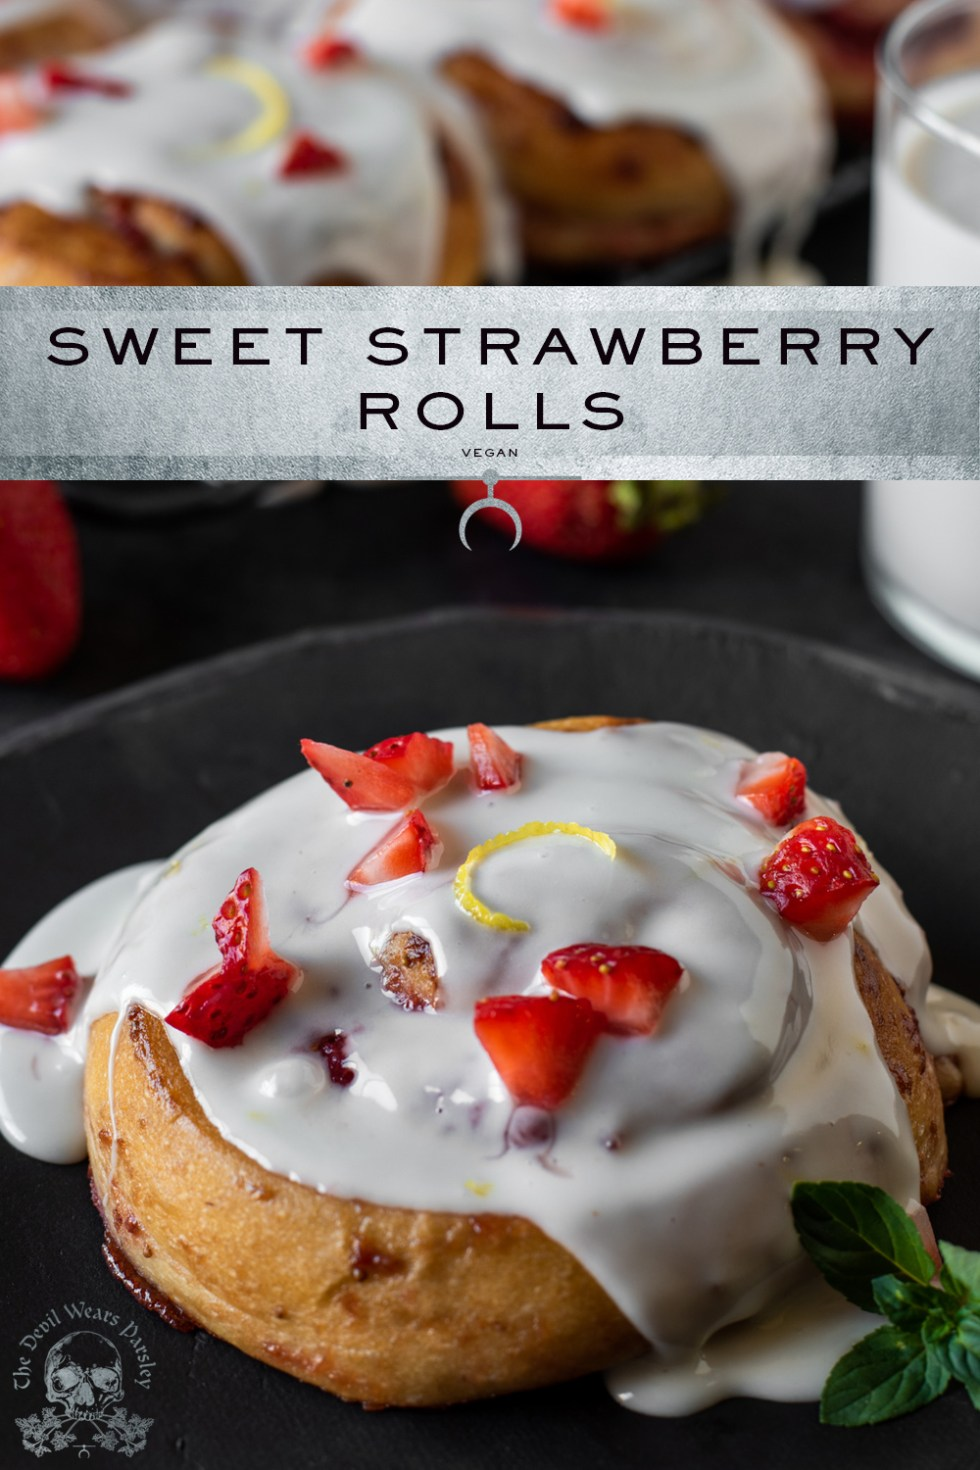 Sinfully sweet strawberries enraptured with warm, soft, fluffy dough.  Give it a sugar shower, and fresh berries to top, and you're on your way to strawberry delight!